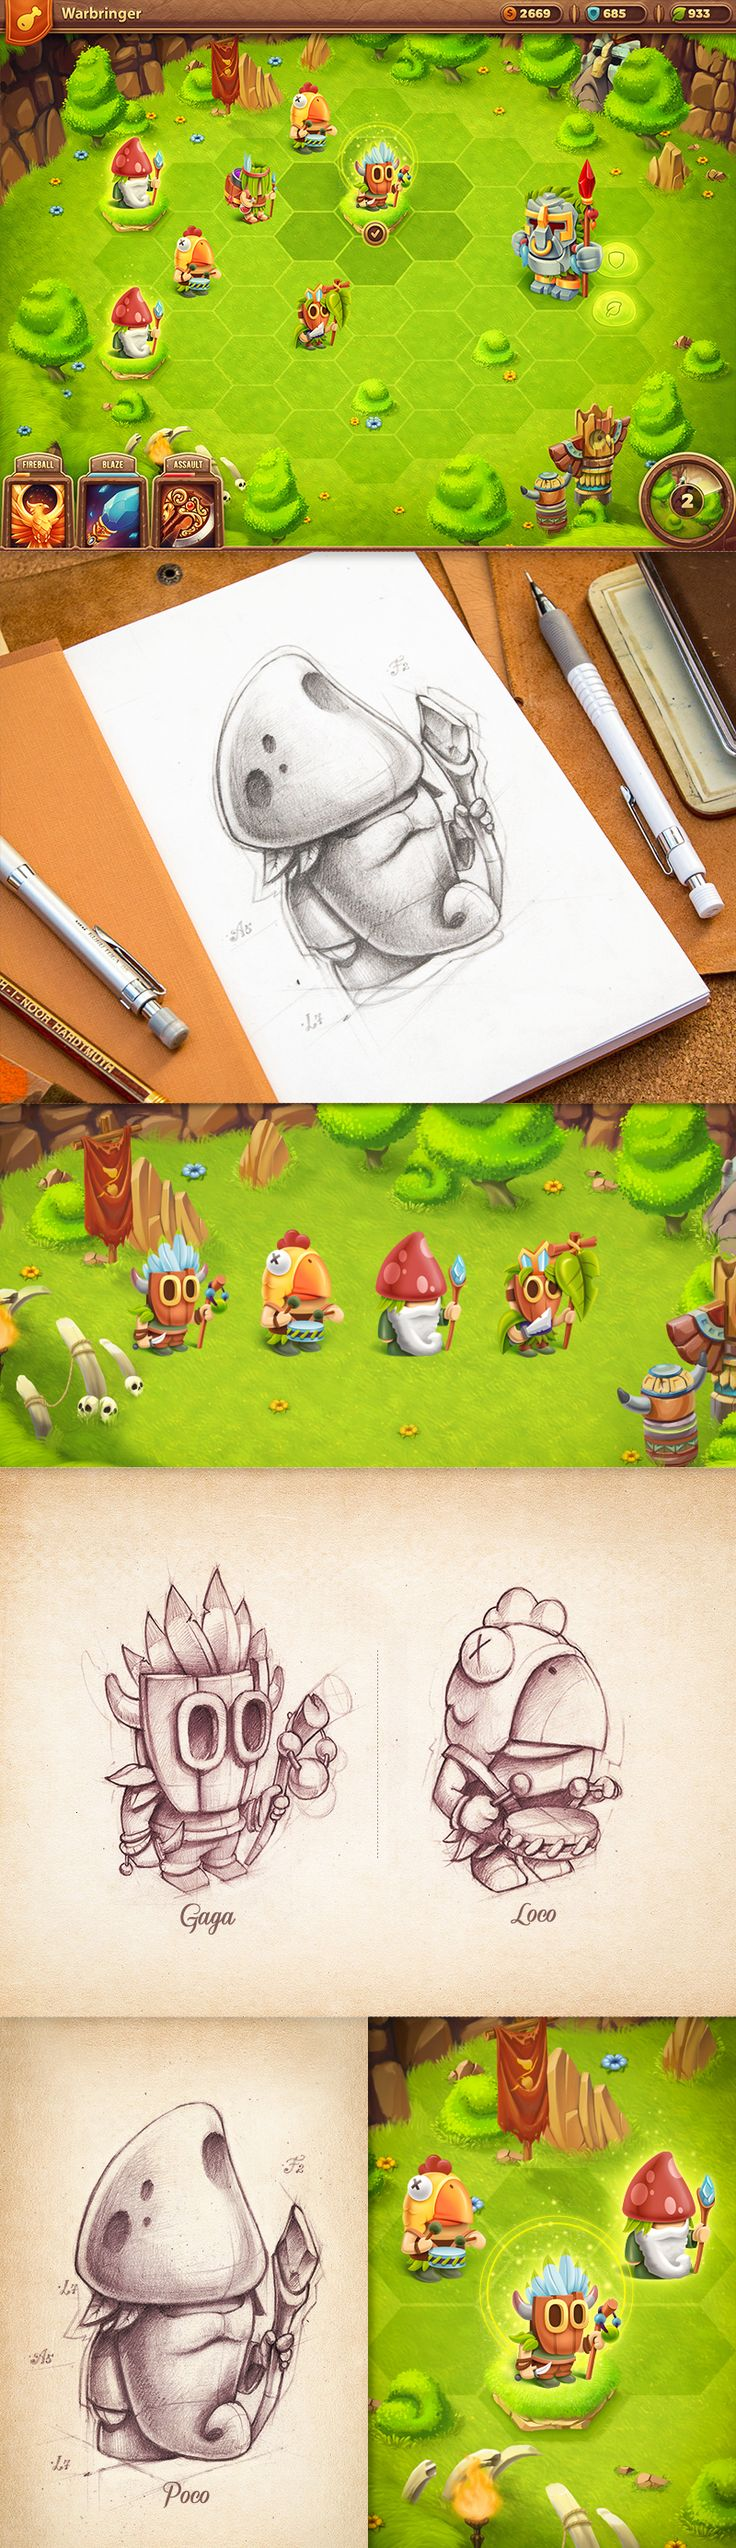 iOs Game by Mike | Creative Mints